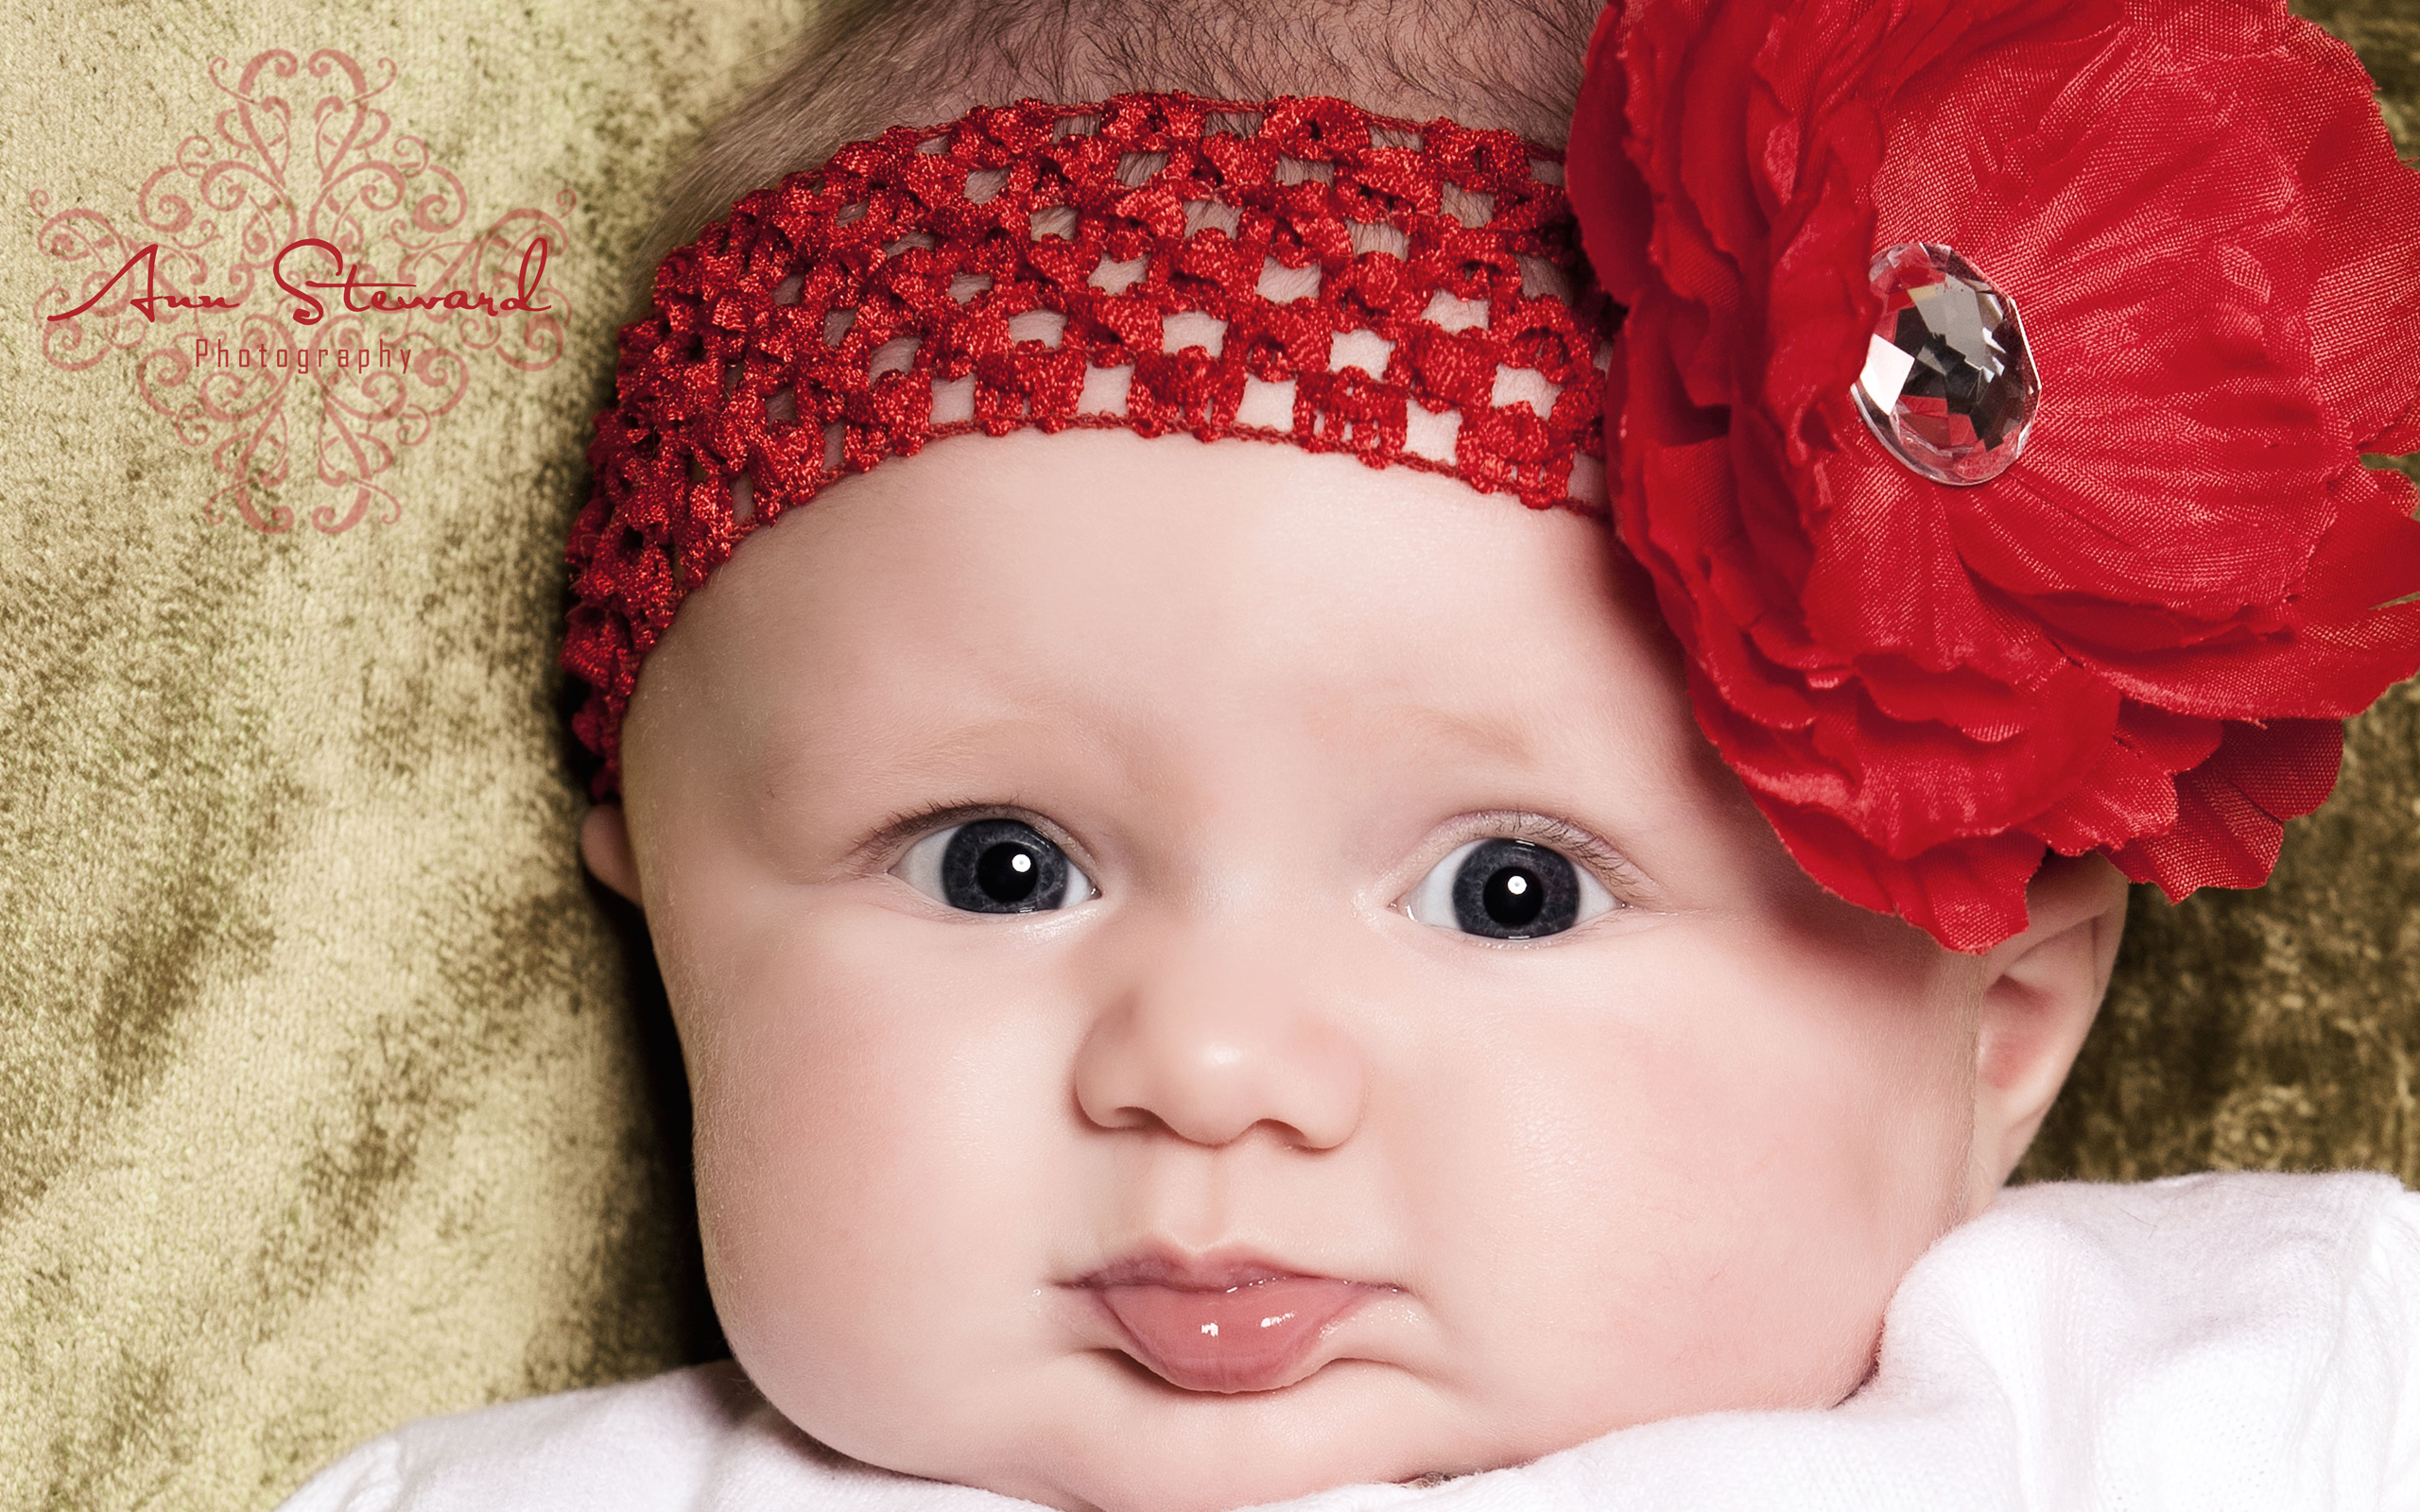 Super Cute Little Baby Wallpapers HD Wallpapers 2560x1600